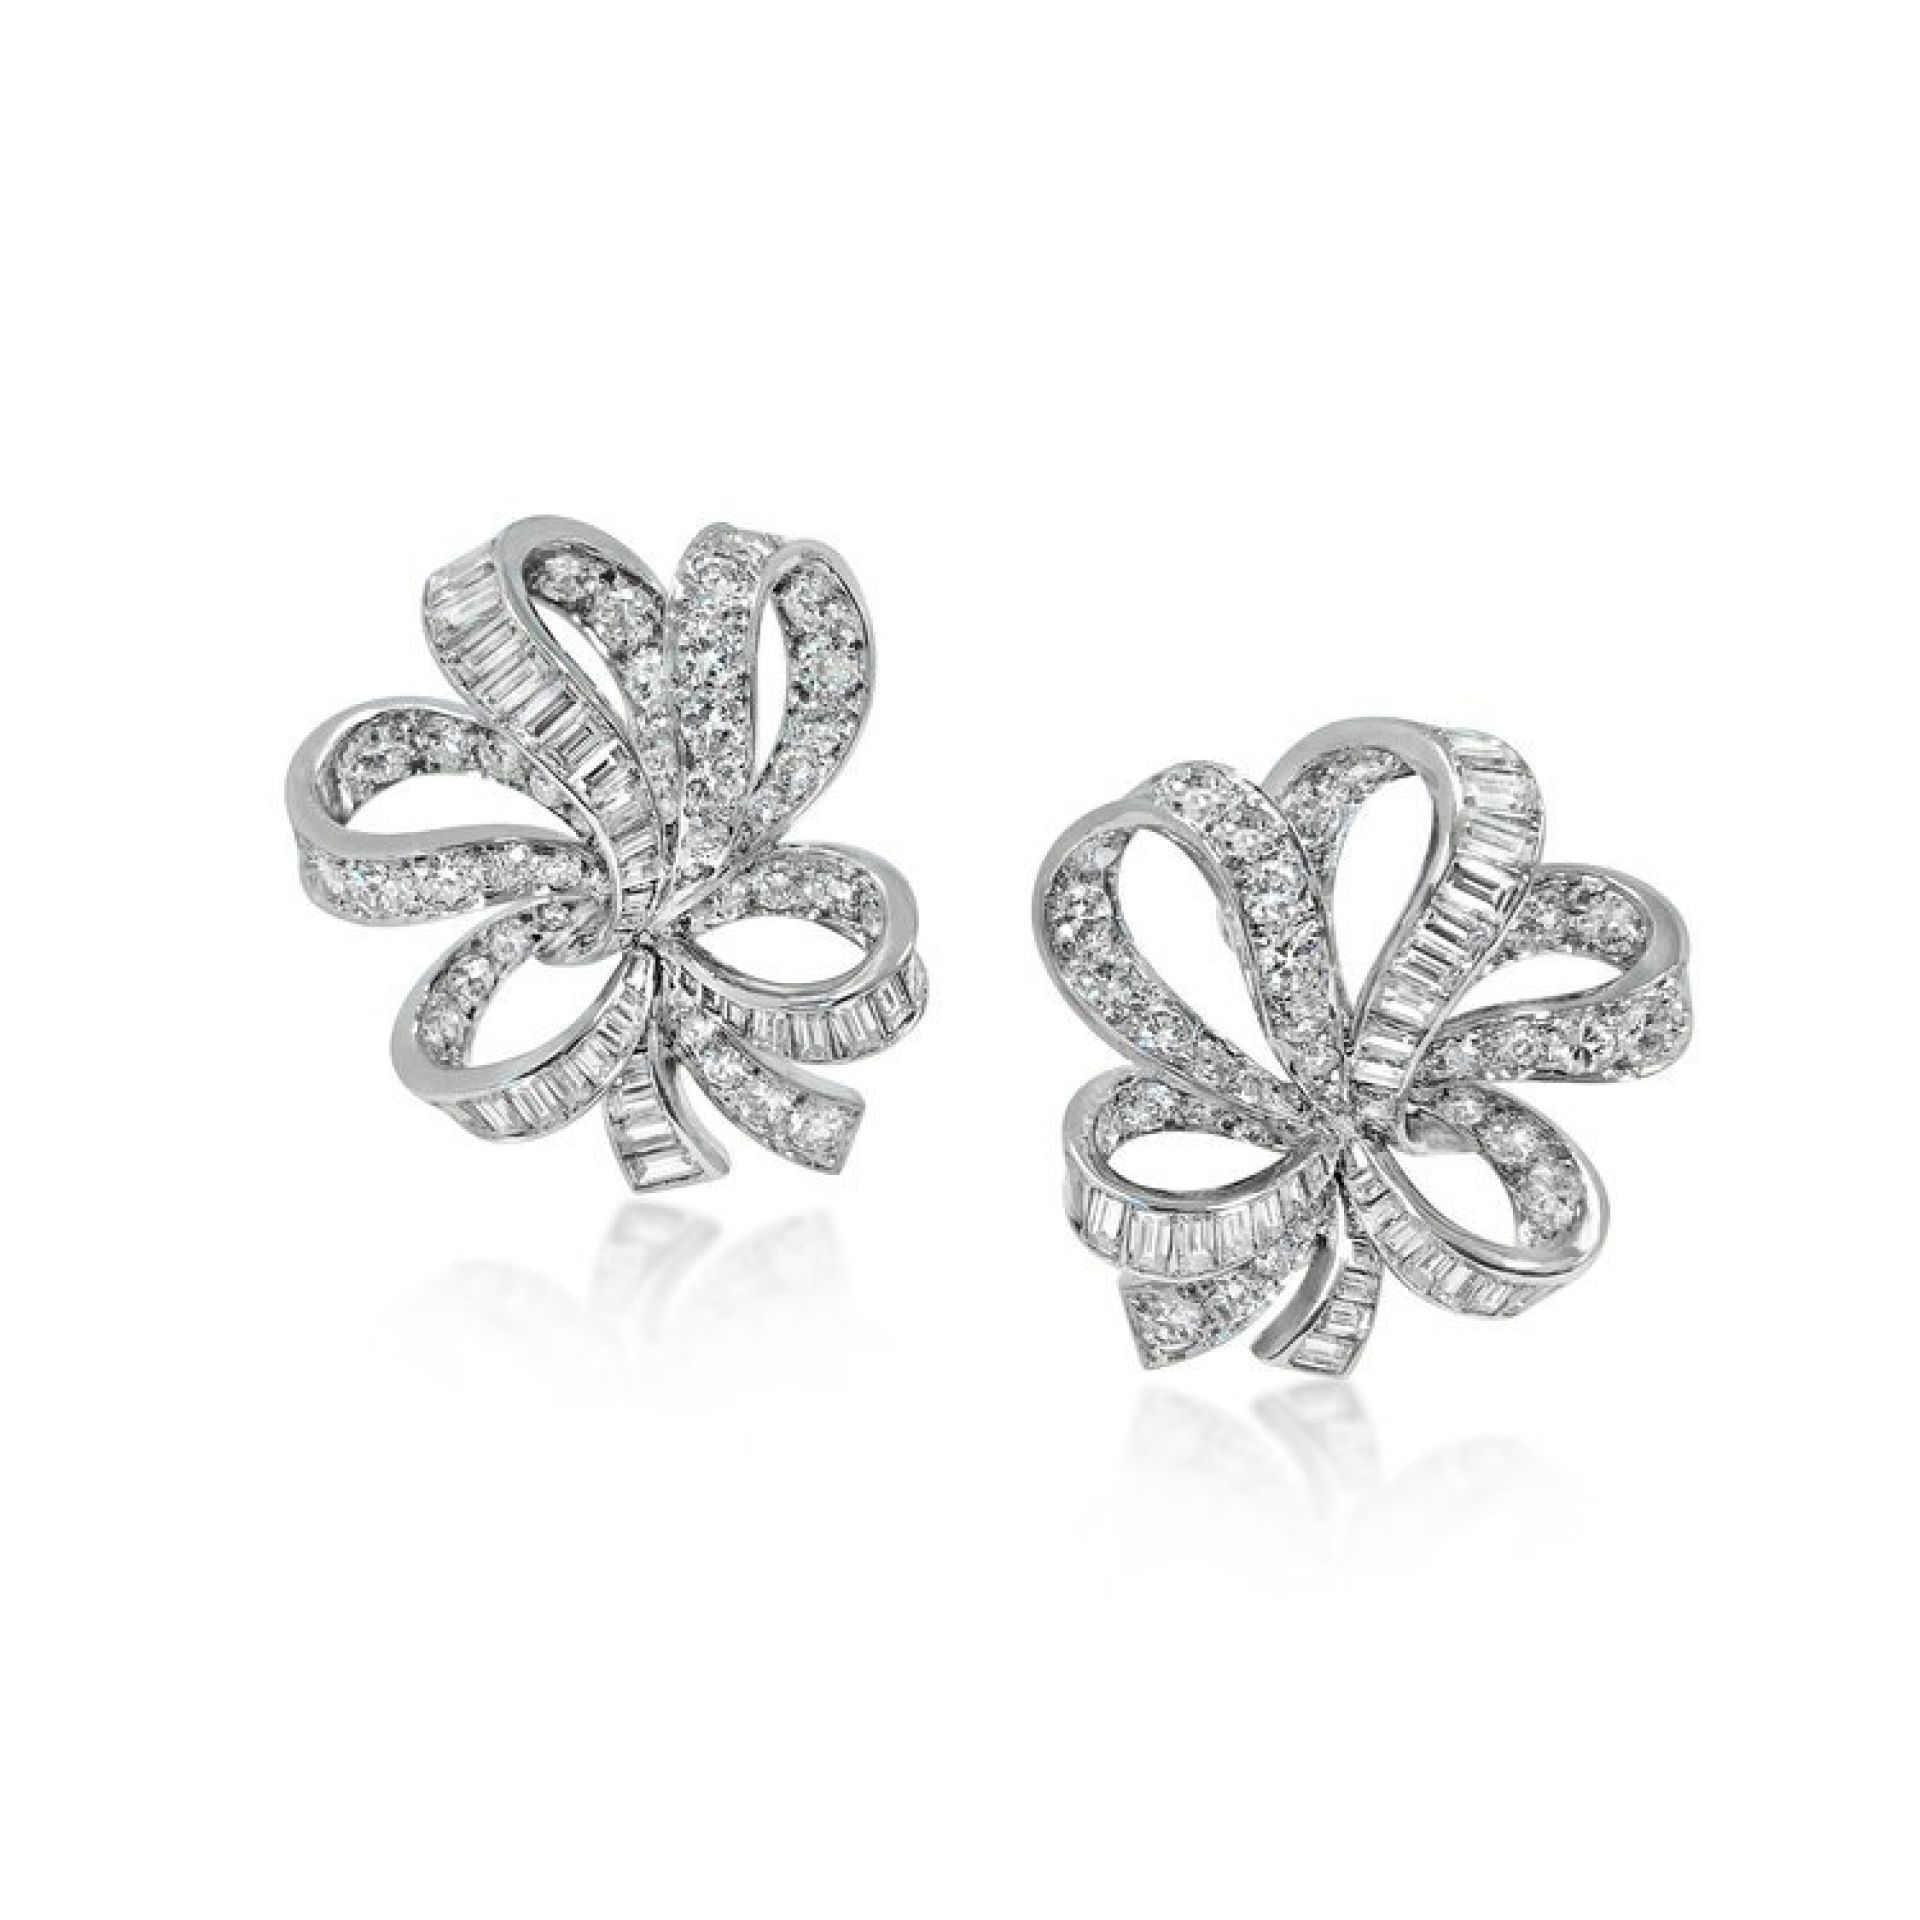 A PAIR OF DIAMOND PLATINUM RIBBON EARCLIPS